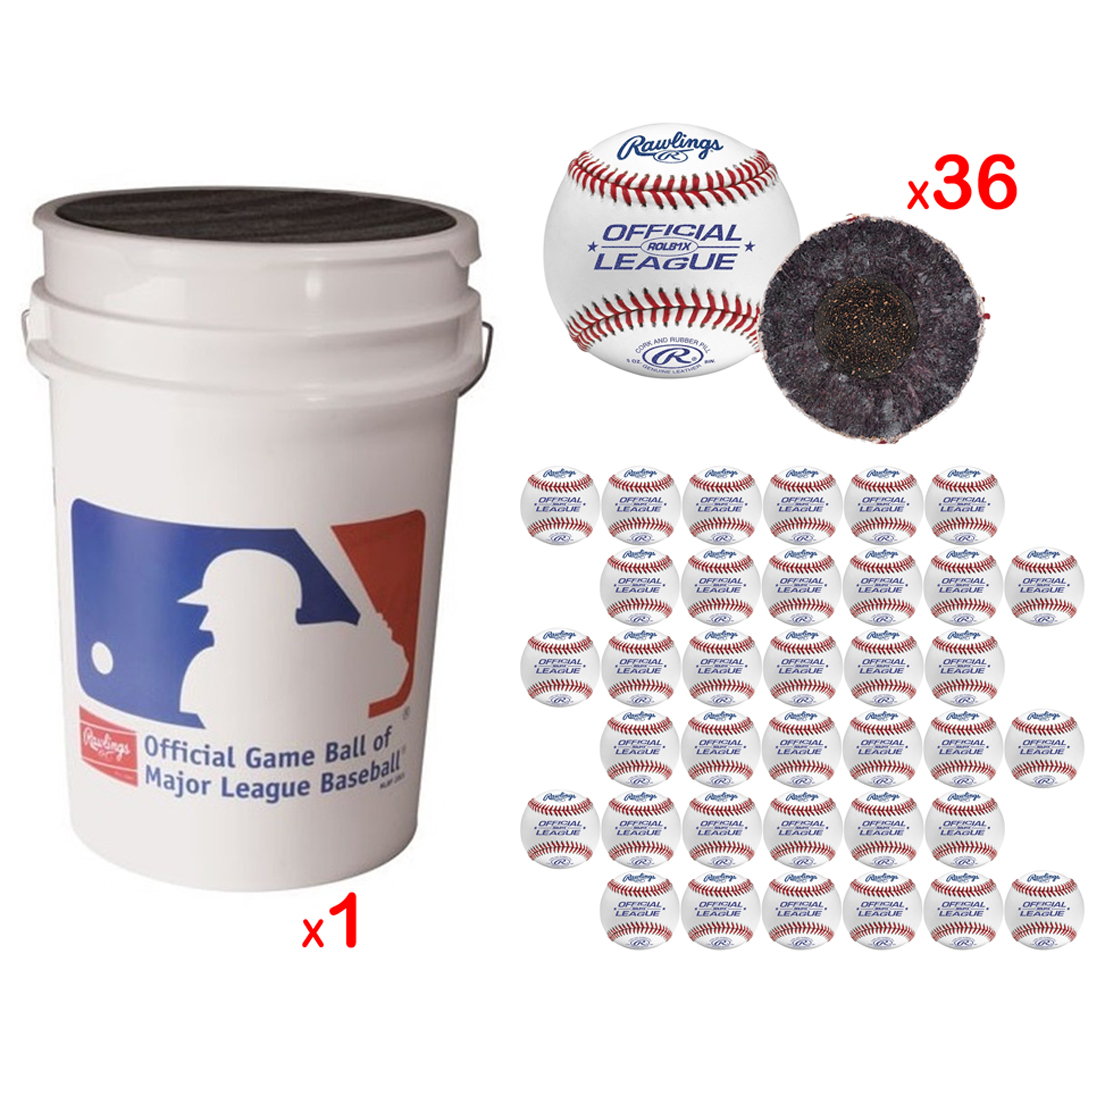 rawlings_rolb1xbucket36_bucket_with_36_rolb1x_baseballs